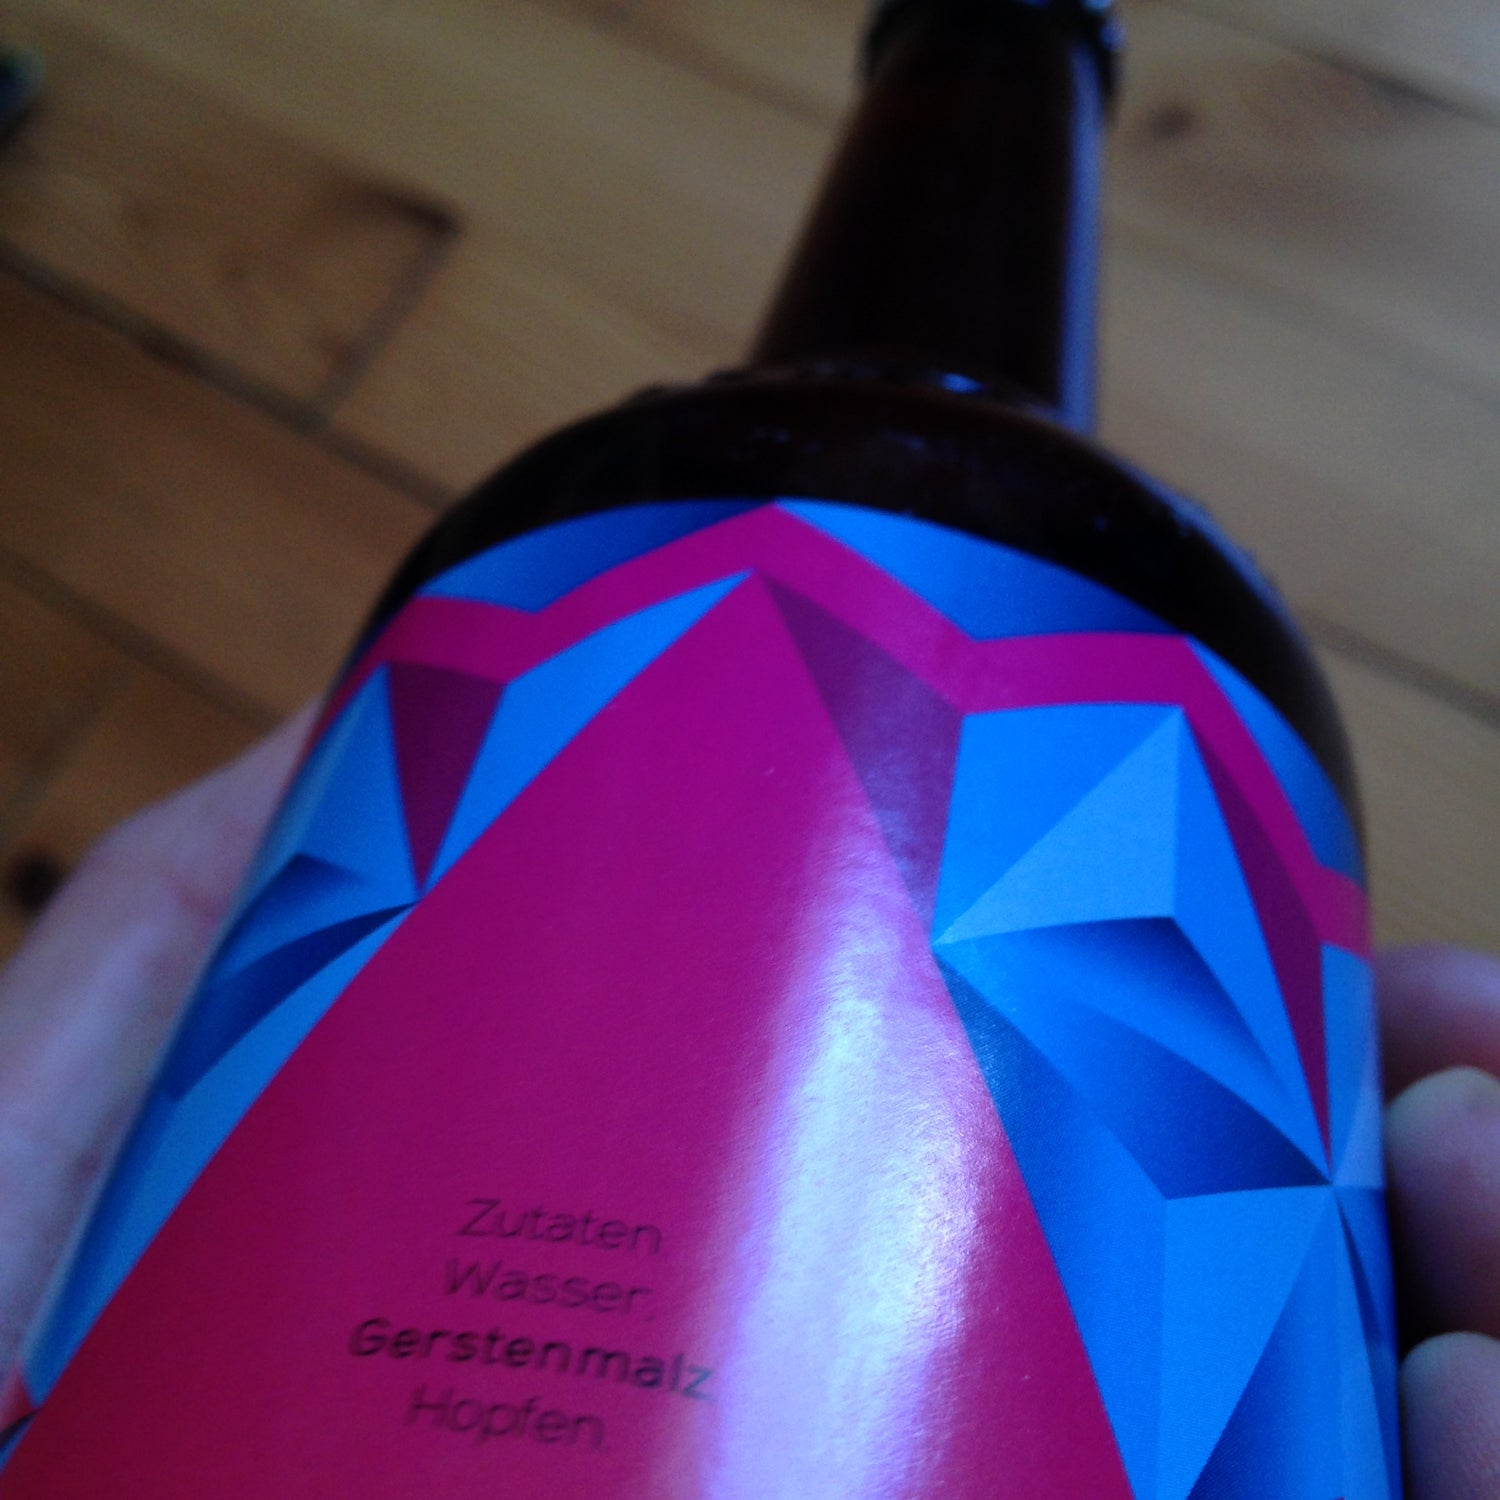 Image of Schlachthofbronx Beer